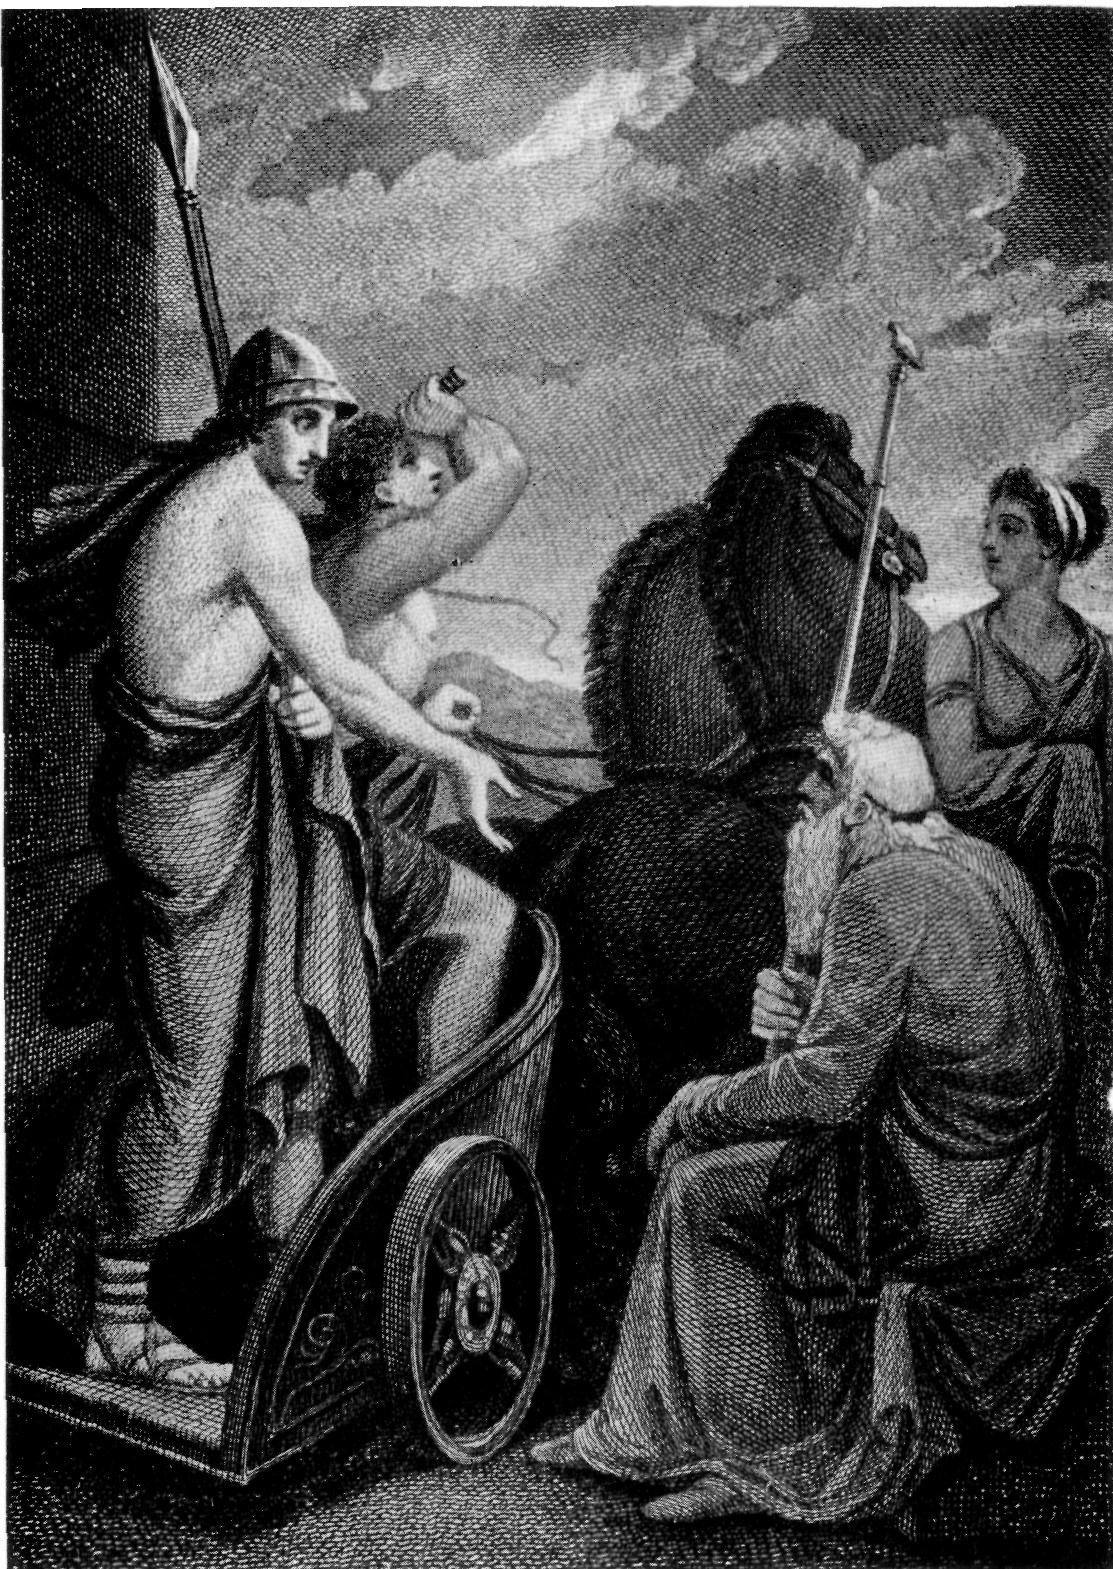 the journey of telemachus manhood in odyssey by sophocles The journey to manhood - books i - iv the first four books of the odyssey are about telemachus, the son of odysseus, as he journeys toward maturity and embarks on a quest to find out information about his father, odysseus.